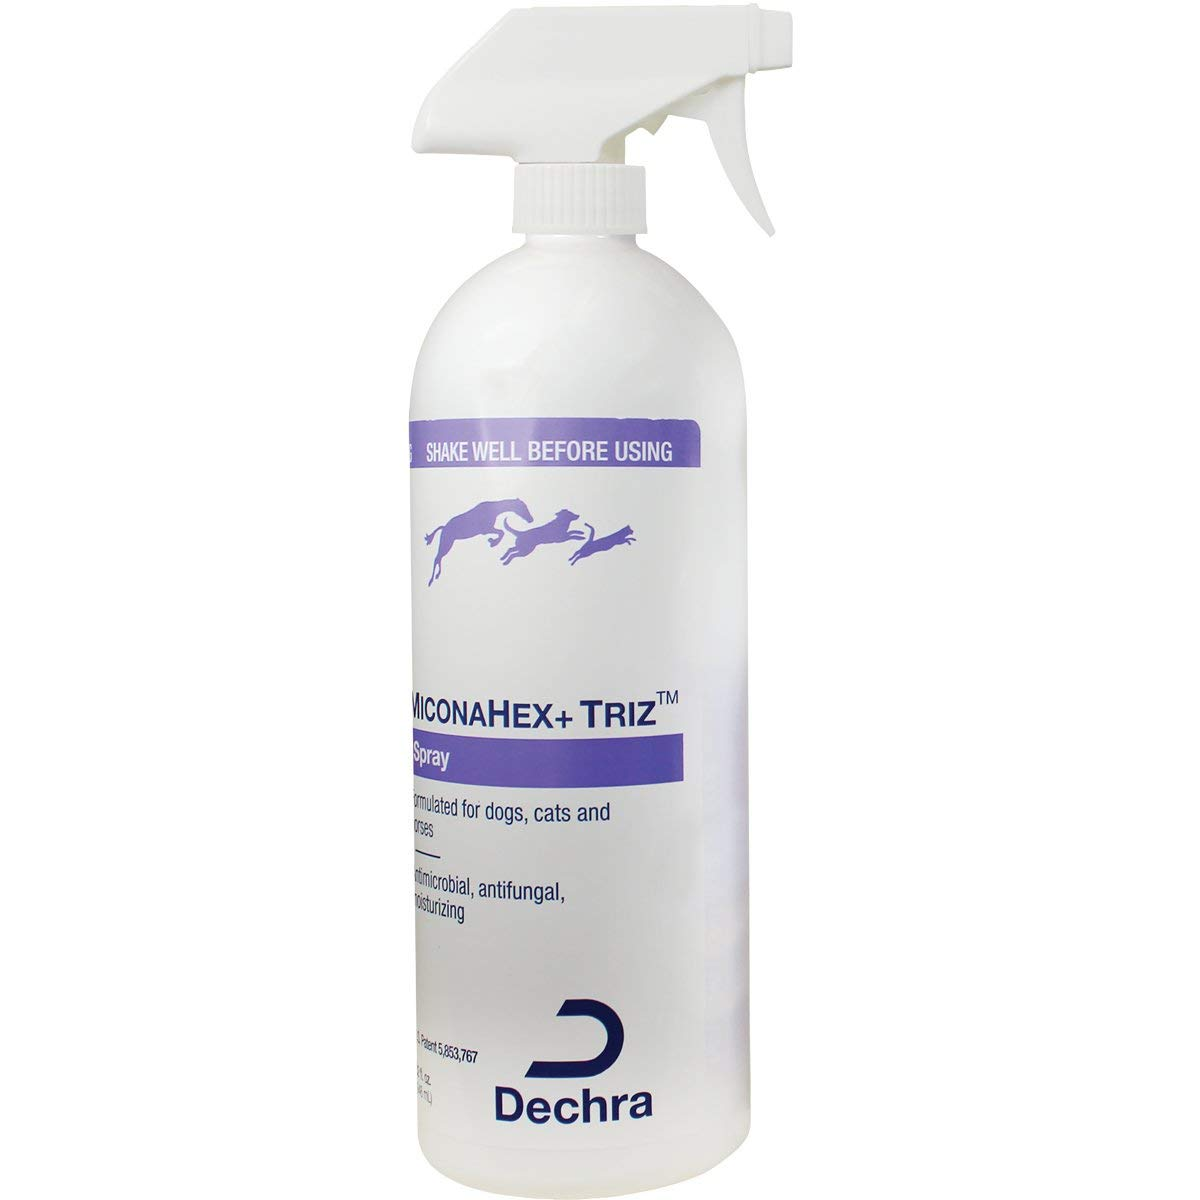 Dechra MiconaHex + Triz Spray for Dogs, Cats & Horses (32oz) by Dechra